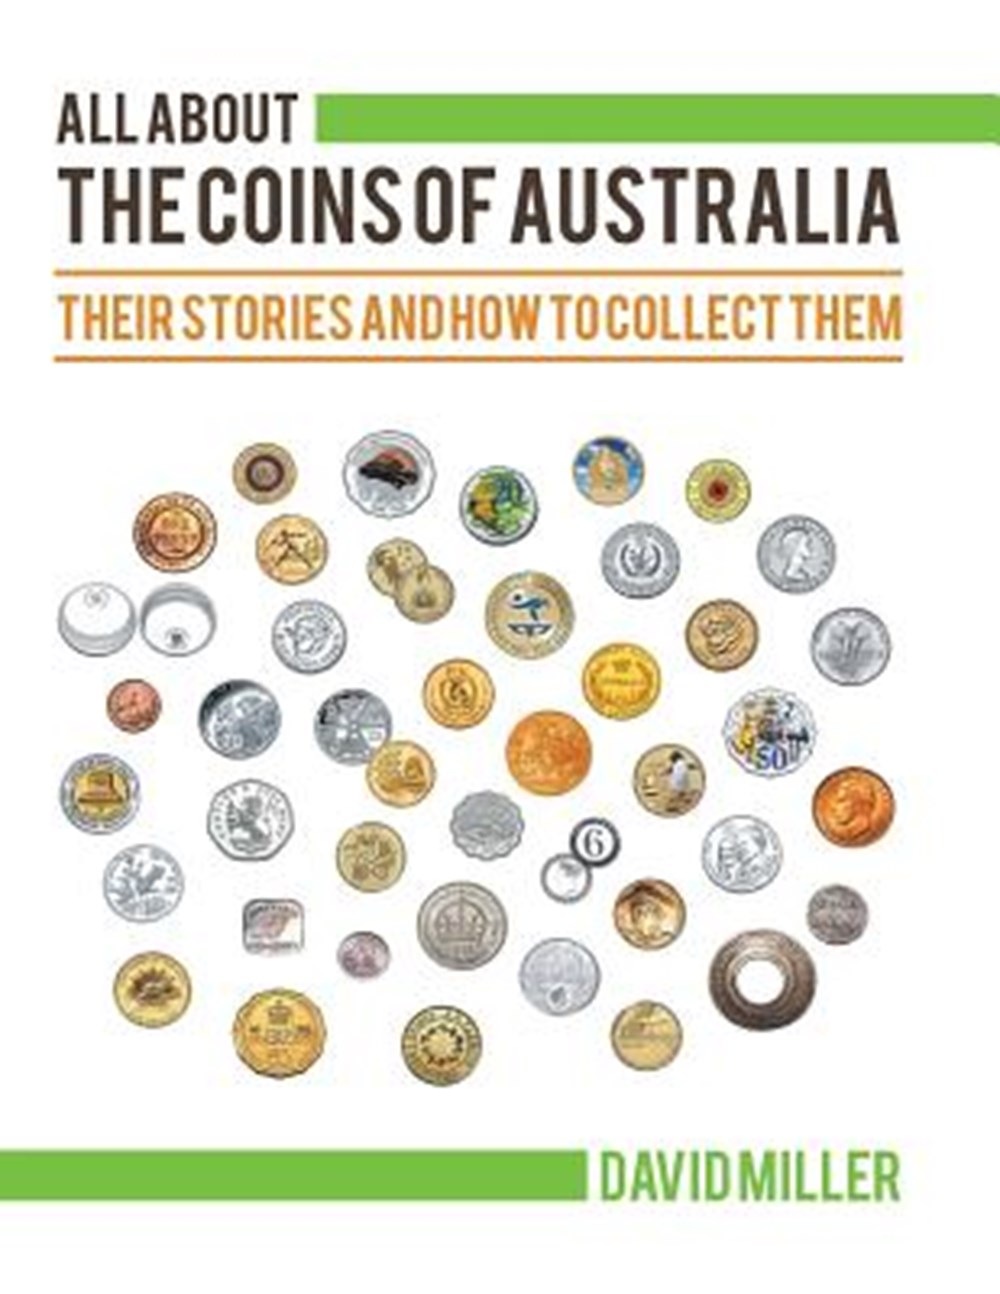 All about the Coins of Australia Their Stories and How to Collect Them